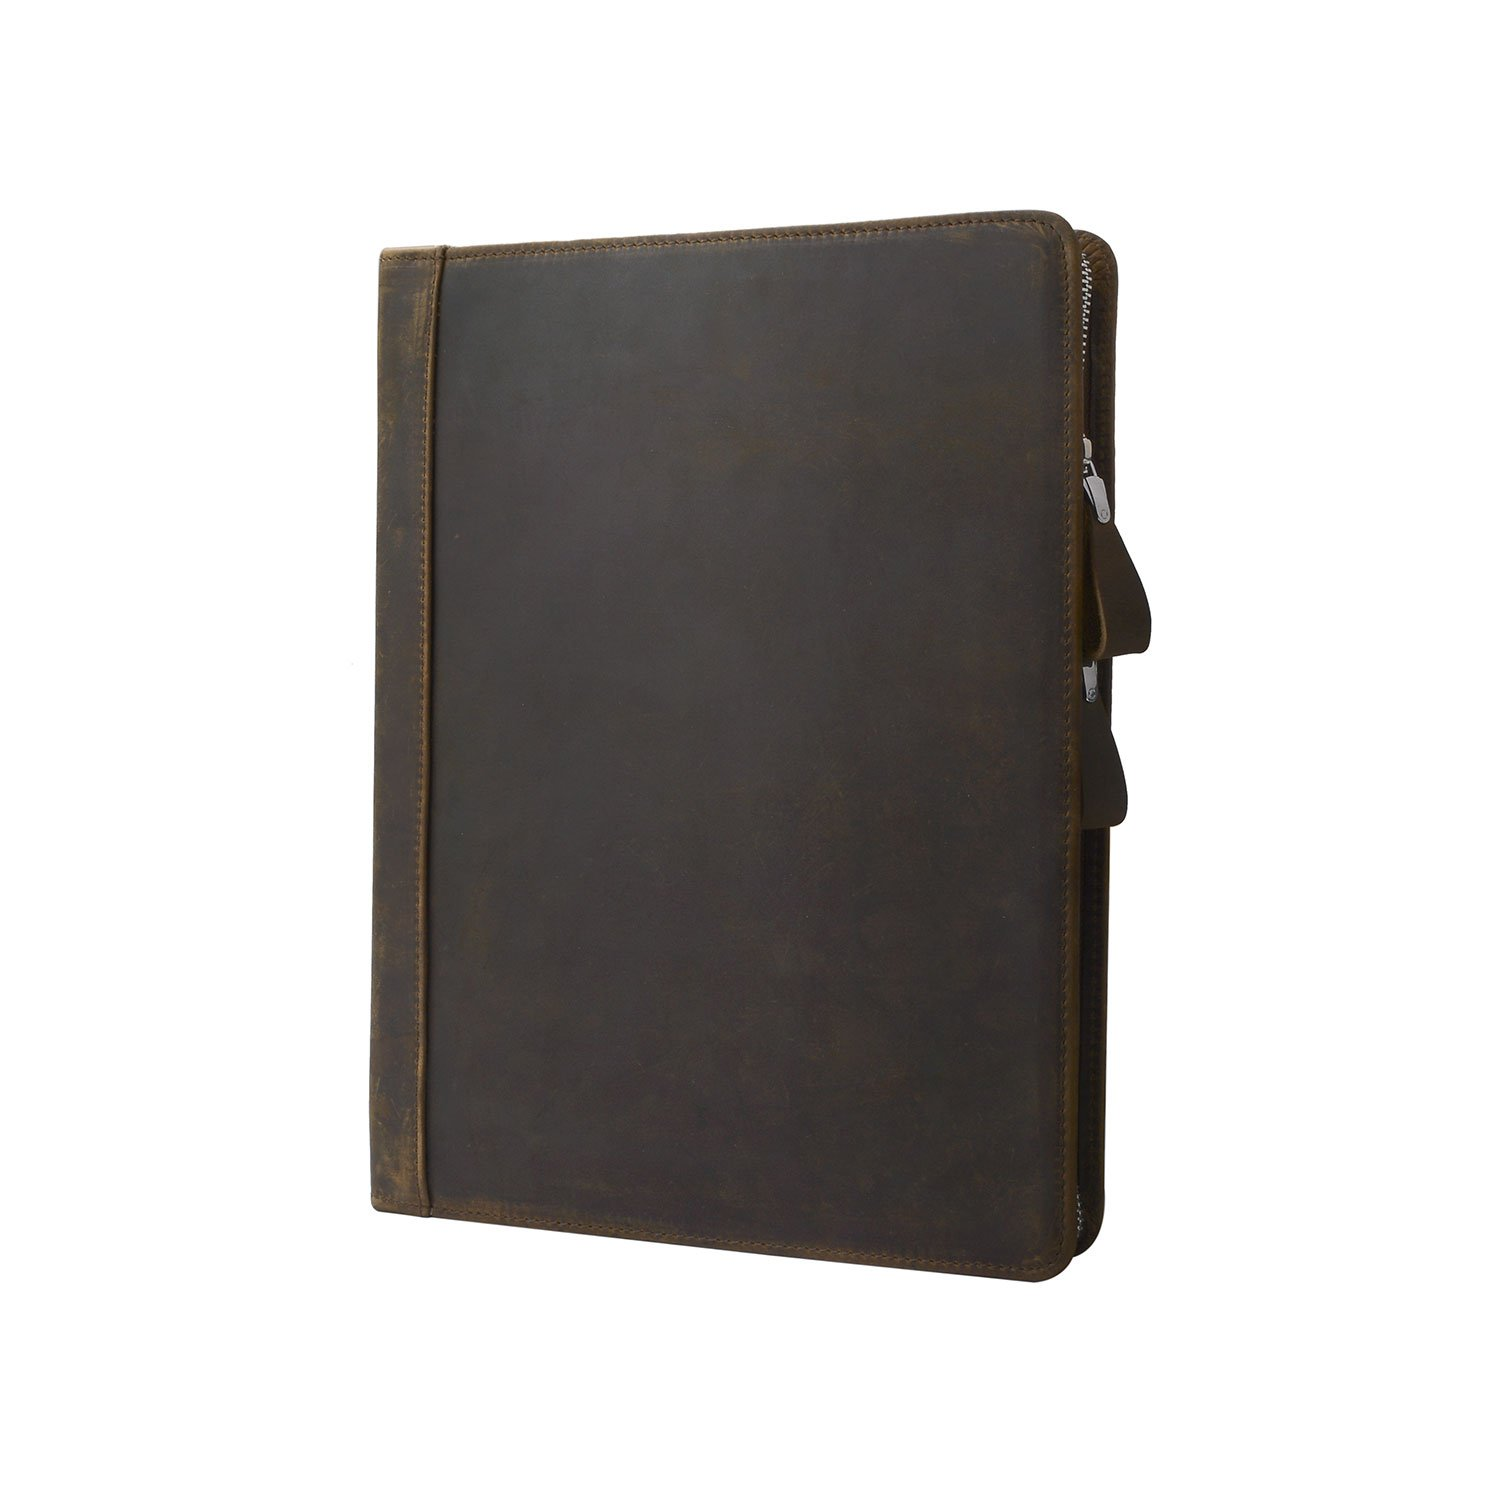 Rustic Leather Padfolio with 3-Ring Binder for Letter A4 Paper, 11-inch MacBook Air, Tan by iCarryAlls (Image #4)